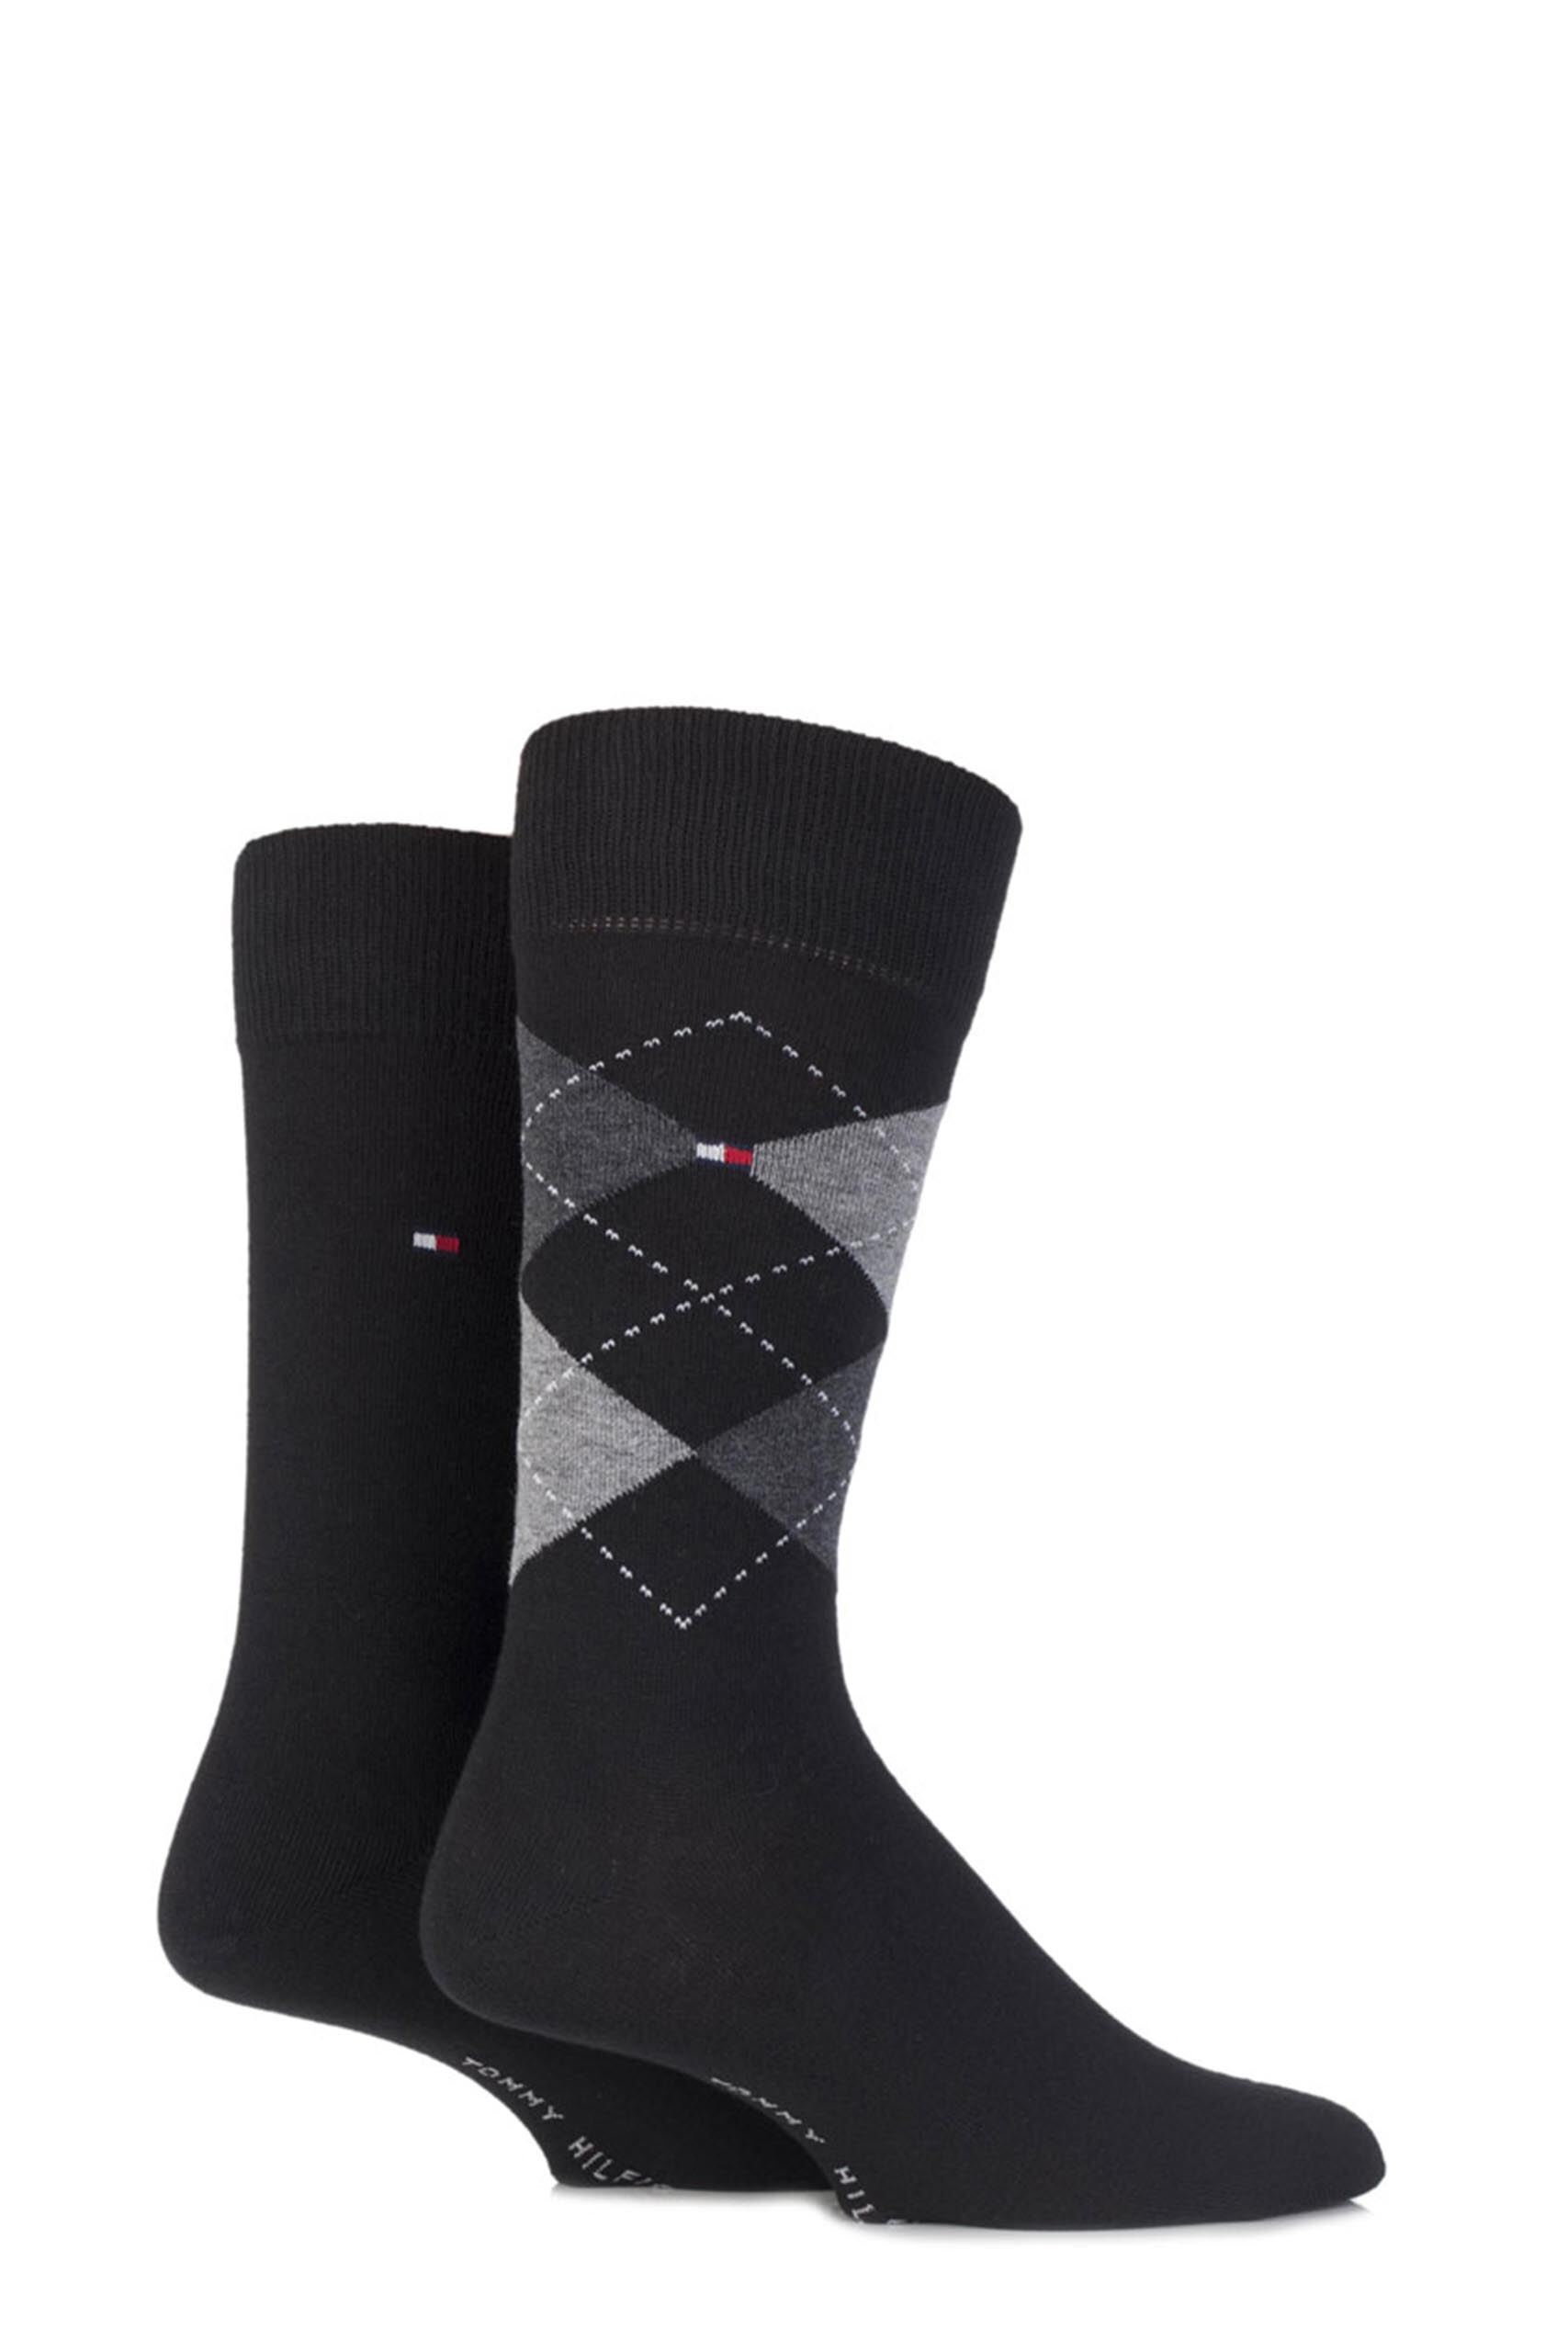 Image of 2 Pair Black Classic Tommy Argyle and Plain Socks Men's 6-8 Mens - Tommy Hilfiger